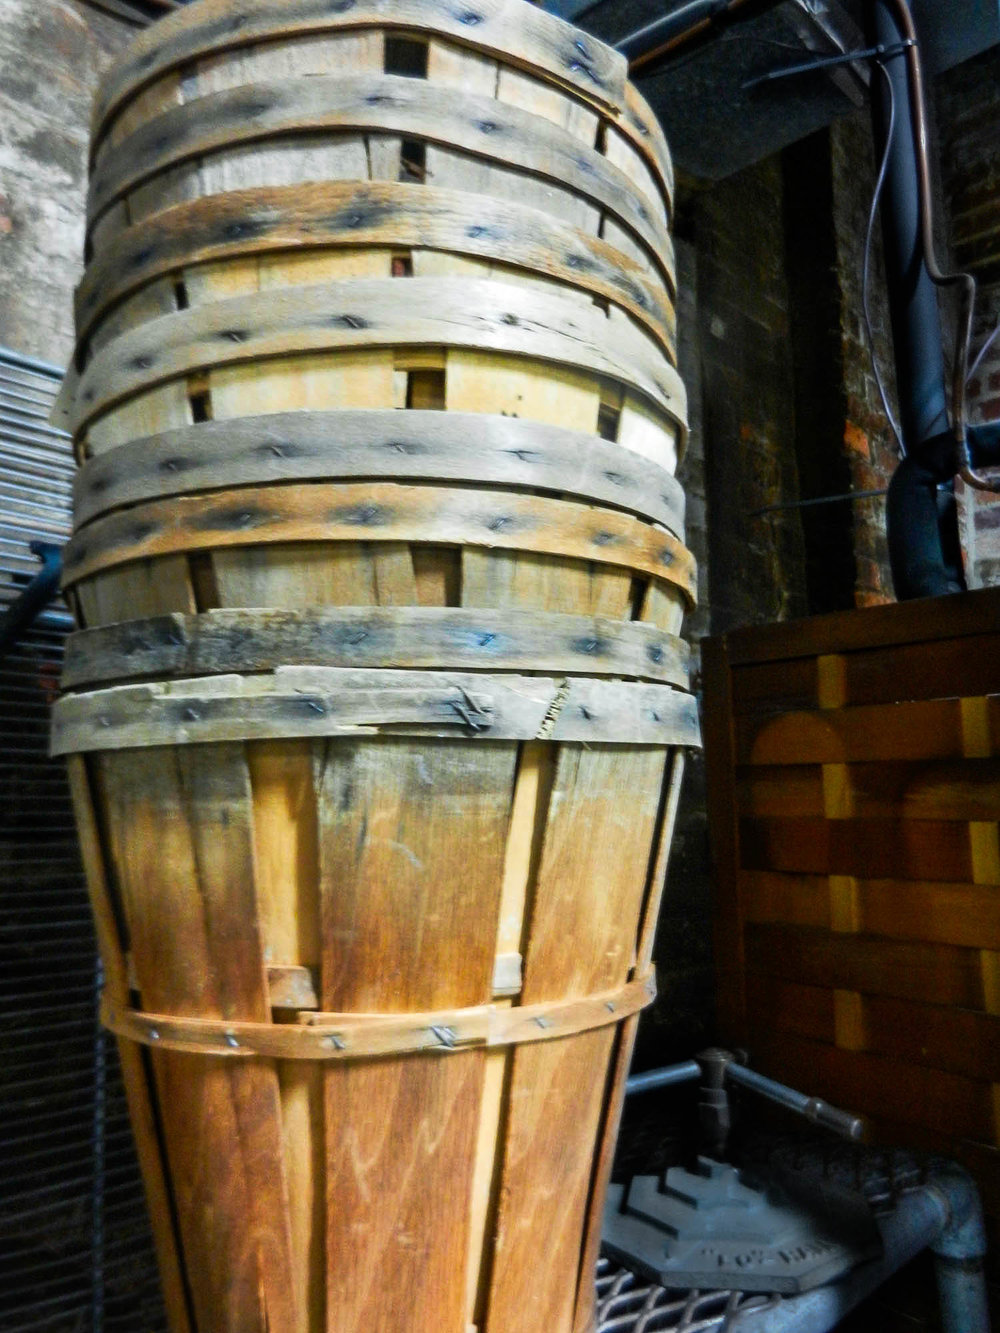 Tall Wooden Bushel Baskets | Refindings York, PA | Architectural Salvage & Antiques